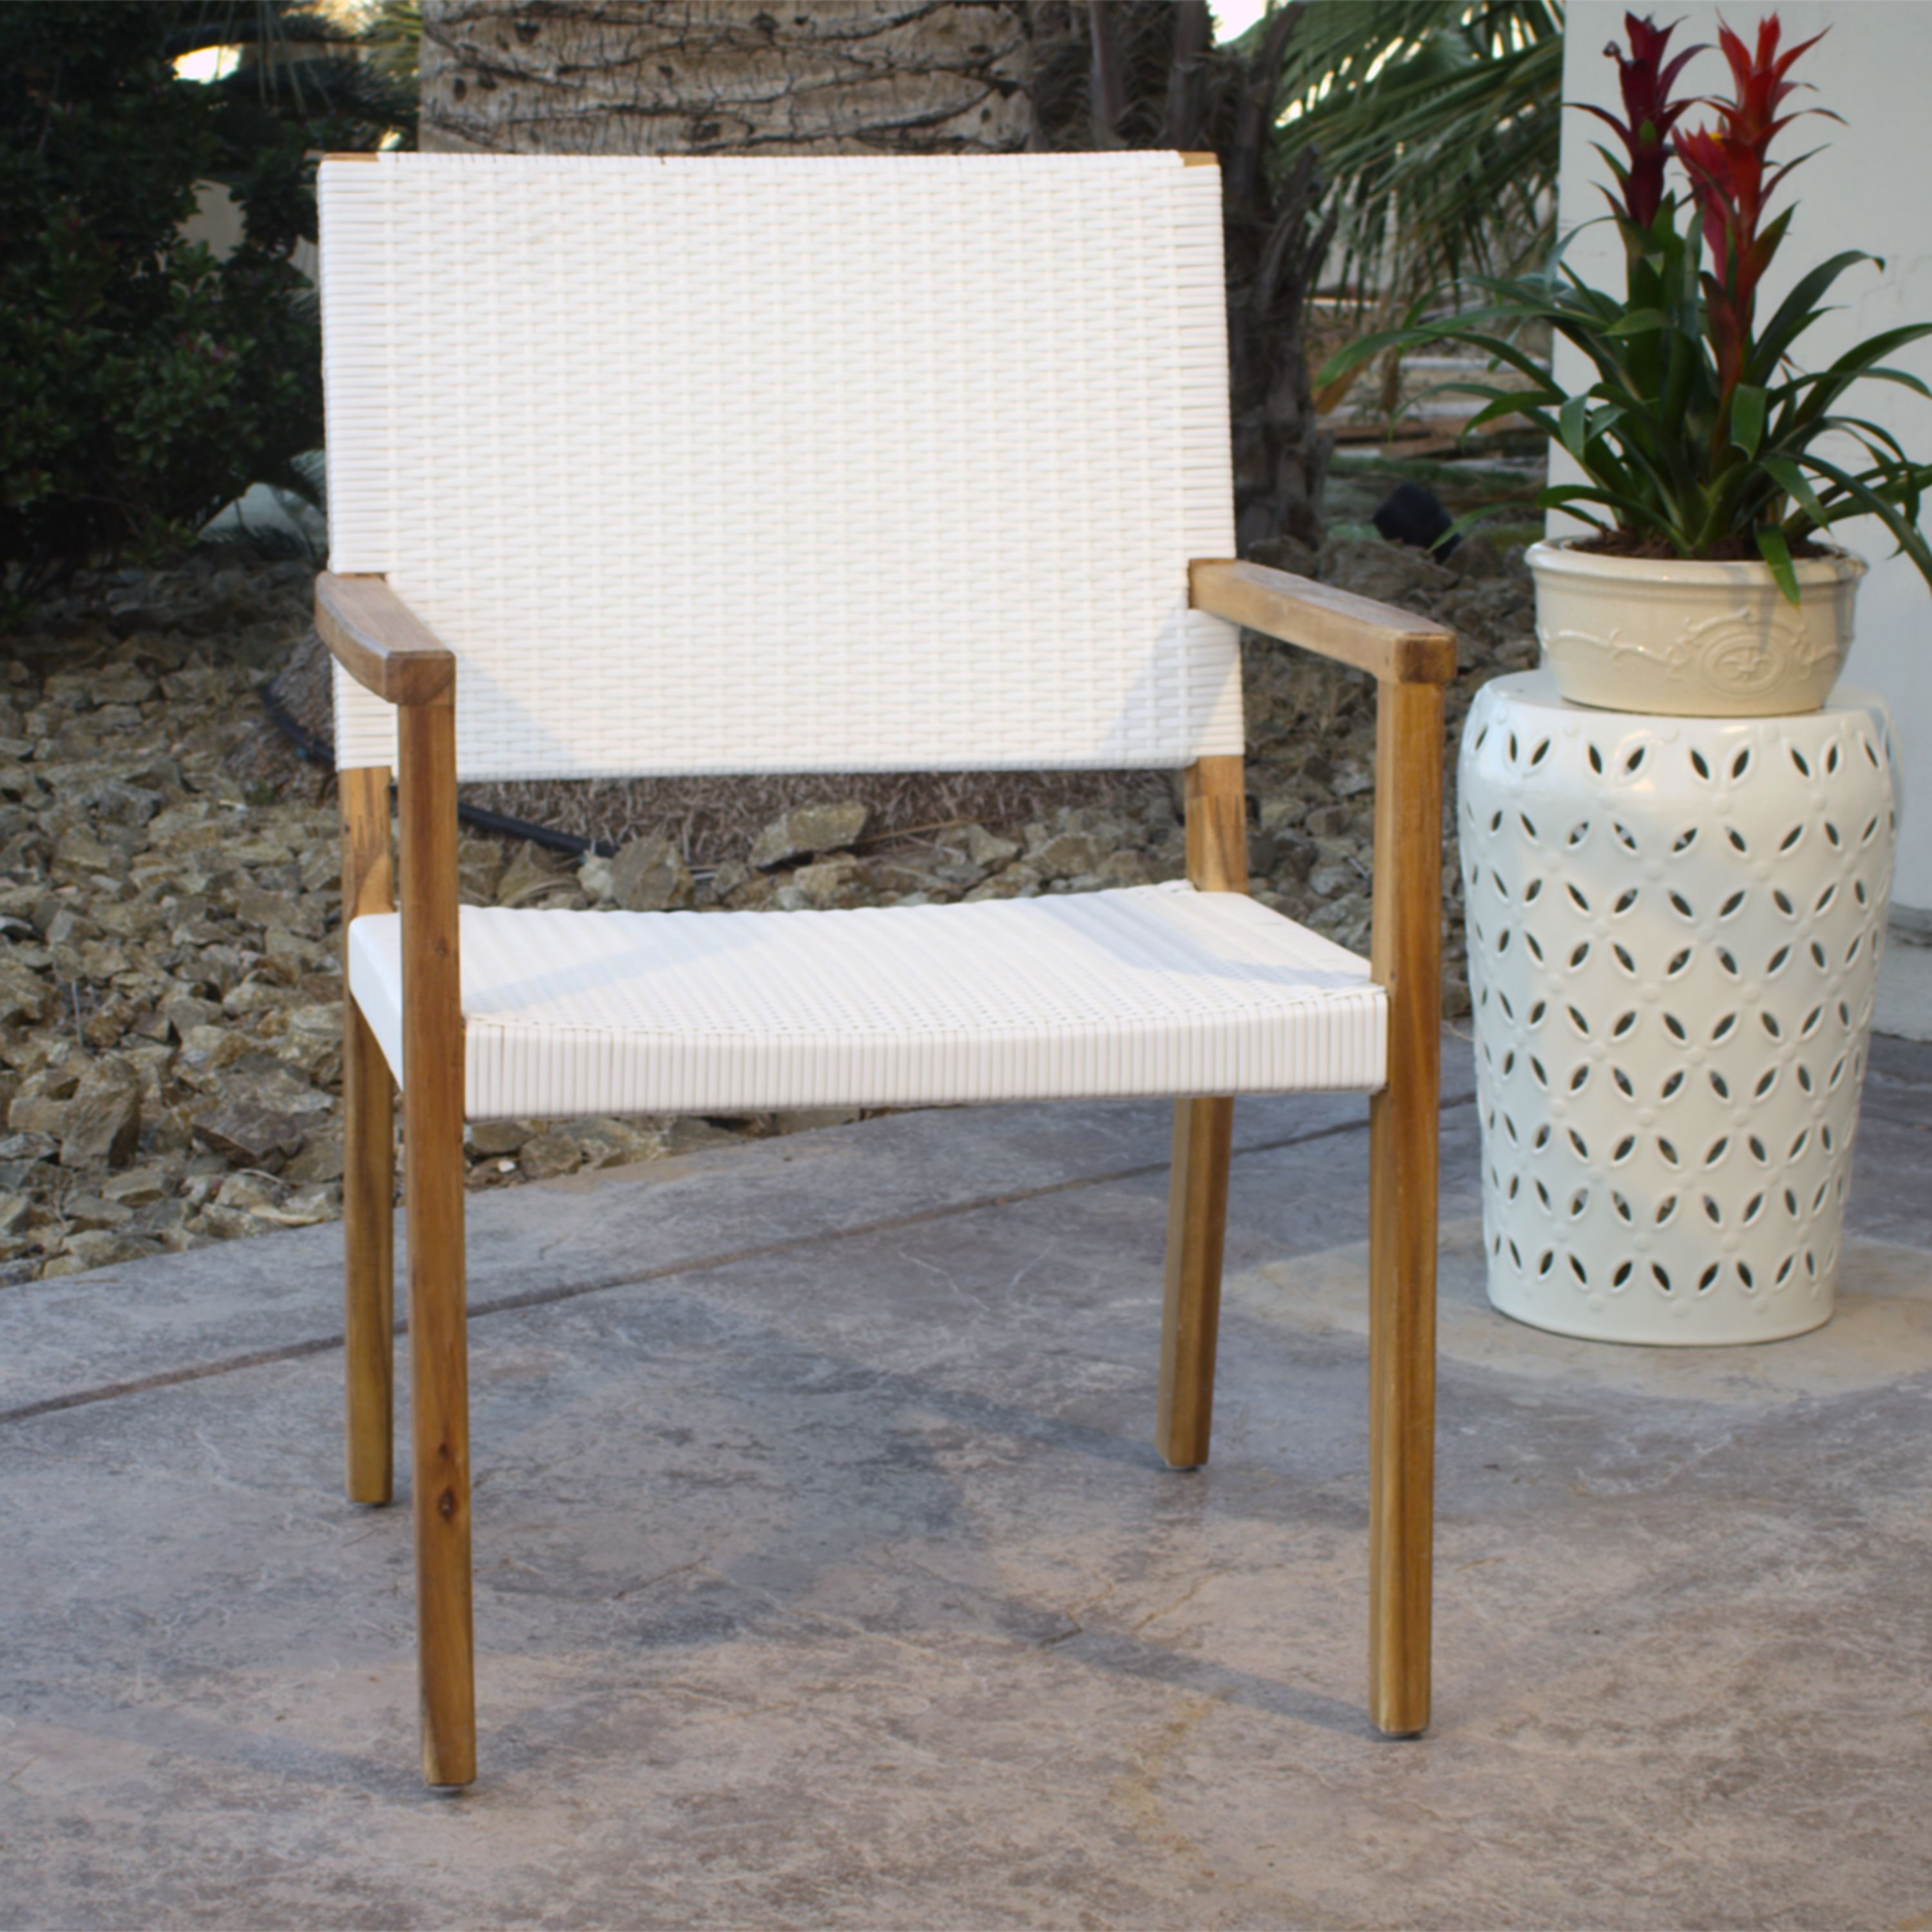 bining woven white all weather wicker and acacia wood our